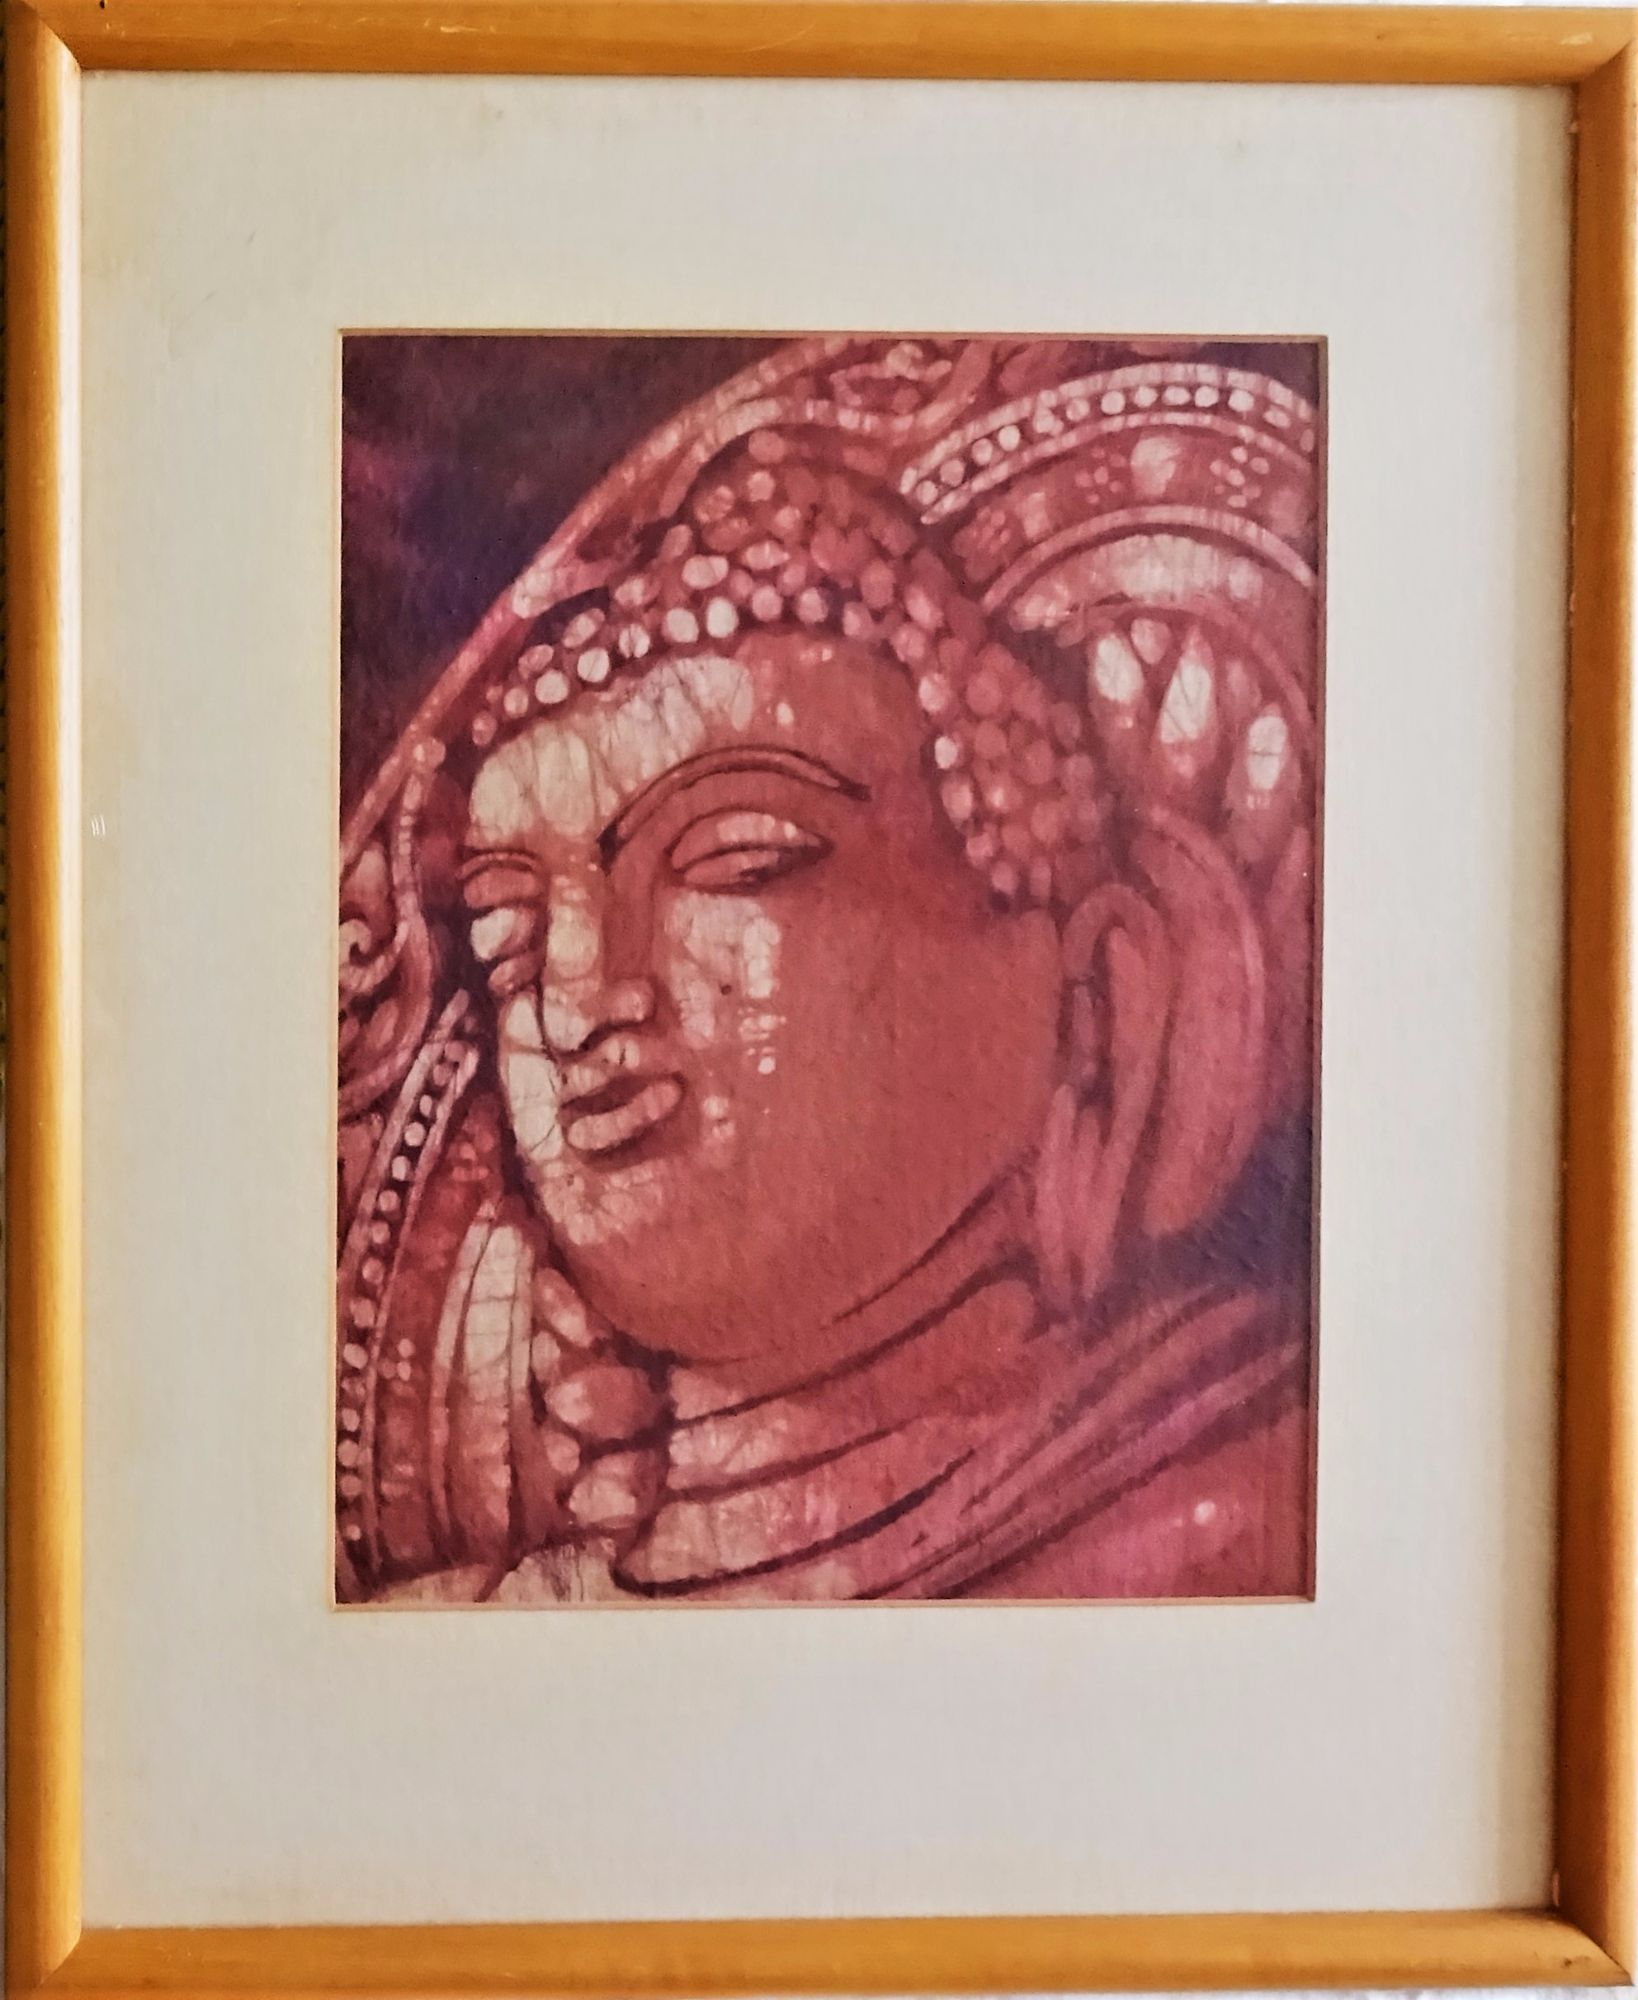 Indian woodblock on silk, erotic art from Khajuraho, c1970. Framed.